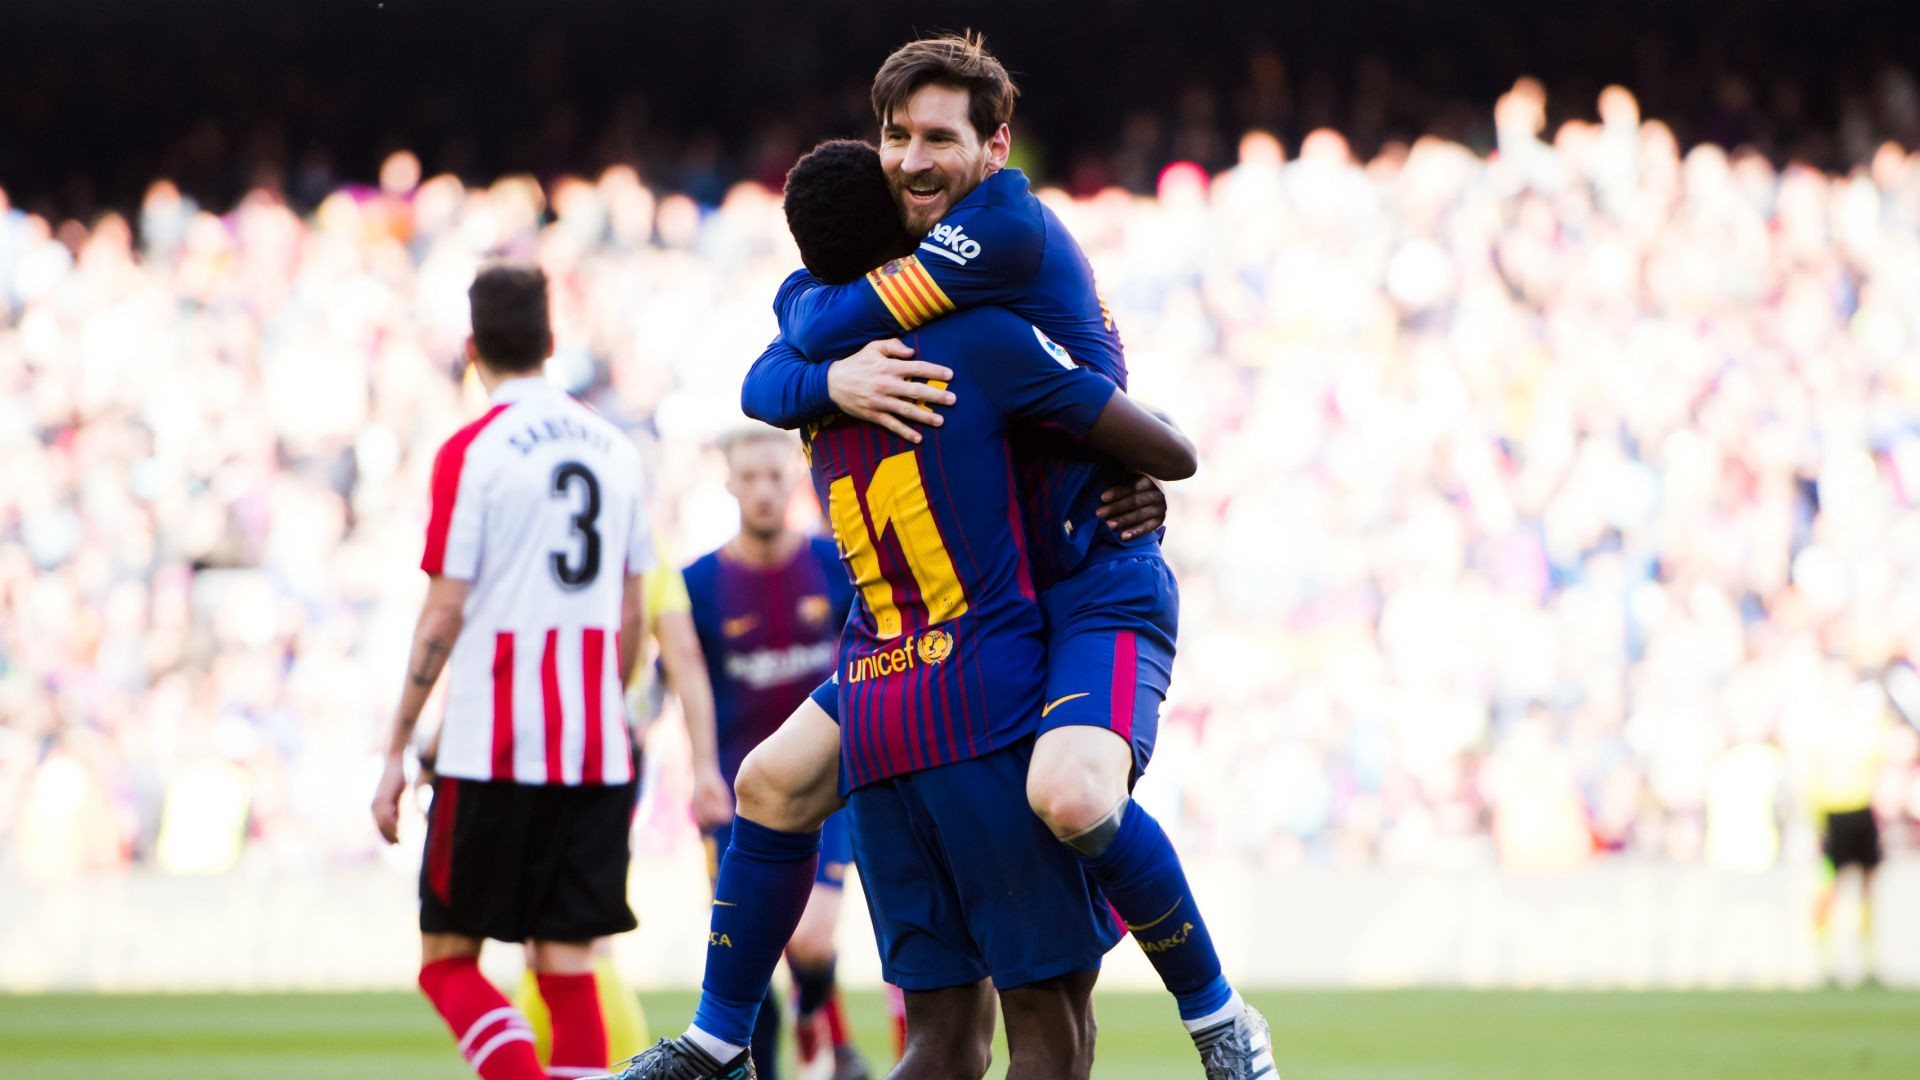 lionelmessi cropped 1mde6j2sgbs9t1mccy2fl8jgvu - VIDEO: Barcelona 2-0 Athletic Bilbao (La Liga) Highlights